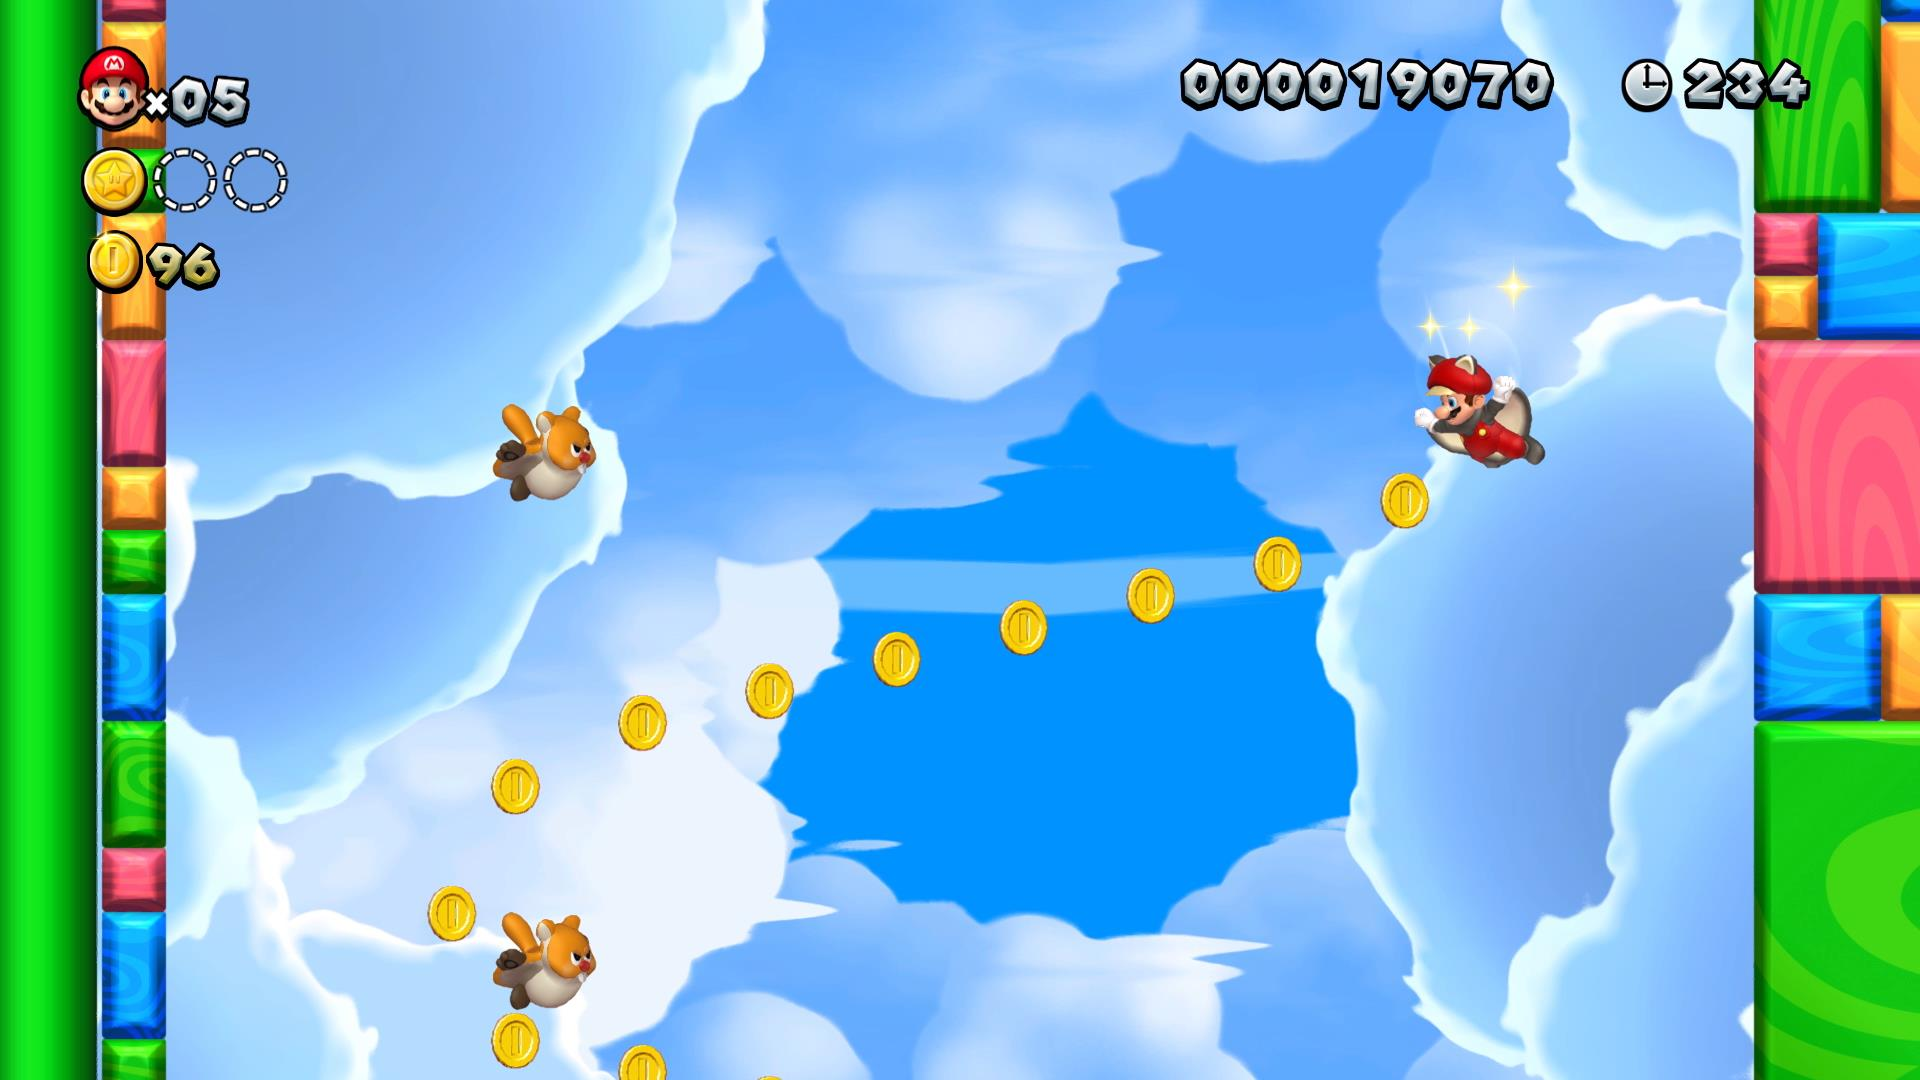 new super mario bros u deluxe announced for switch vg247